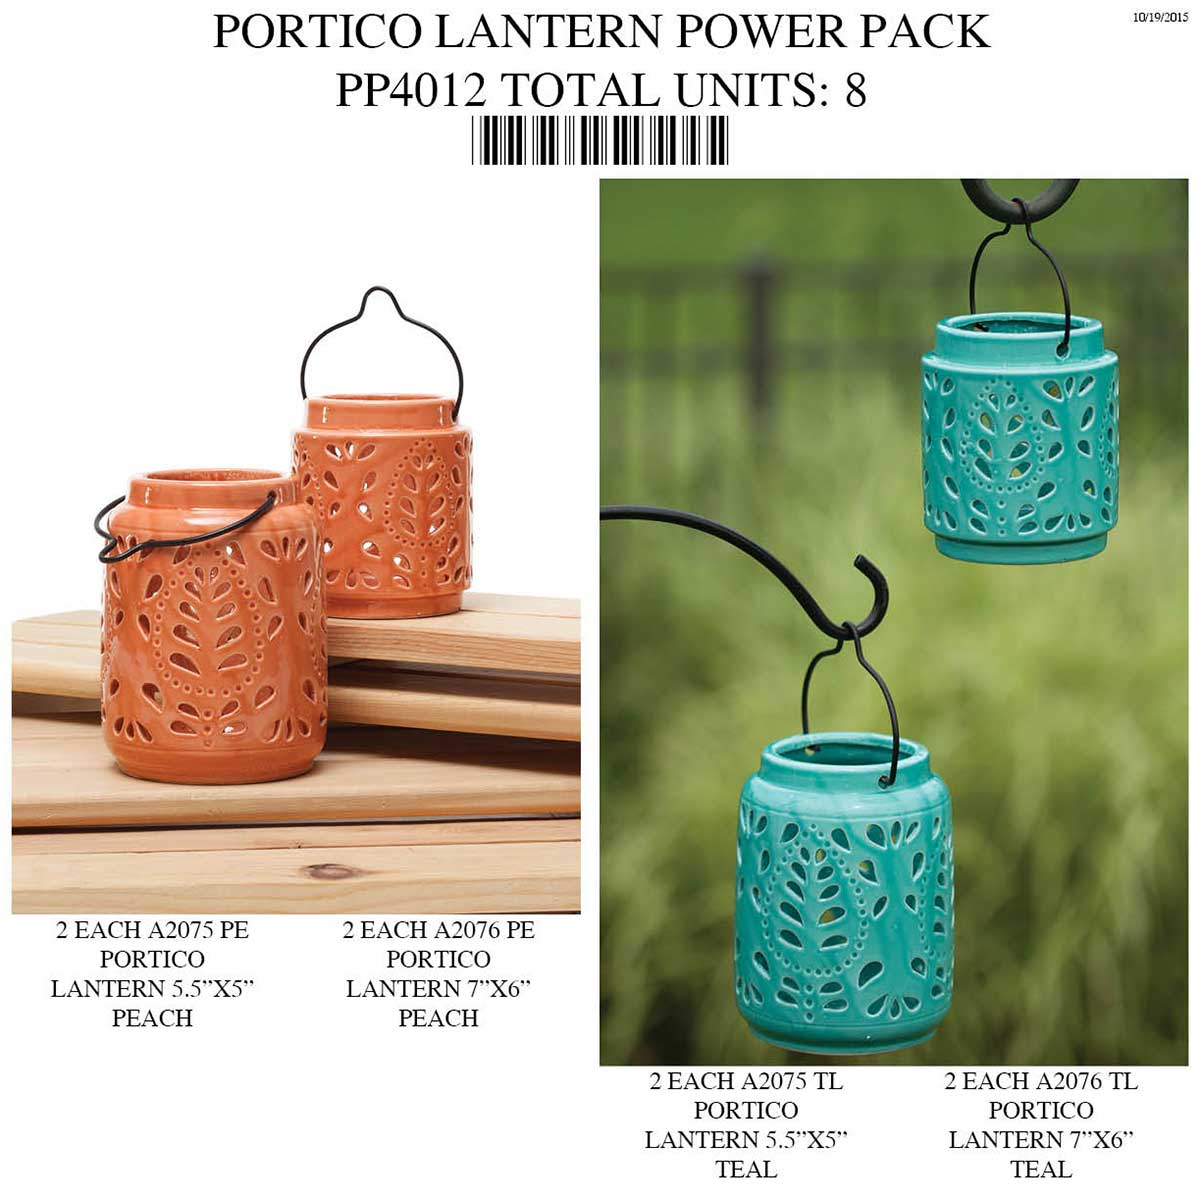 PORTICO LANTERN Power Pack 8 UNITS PP4012